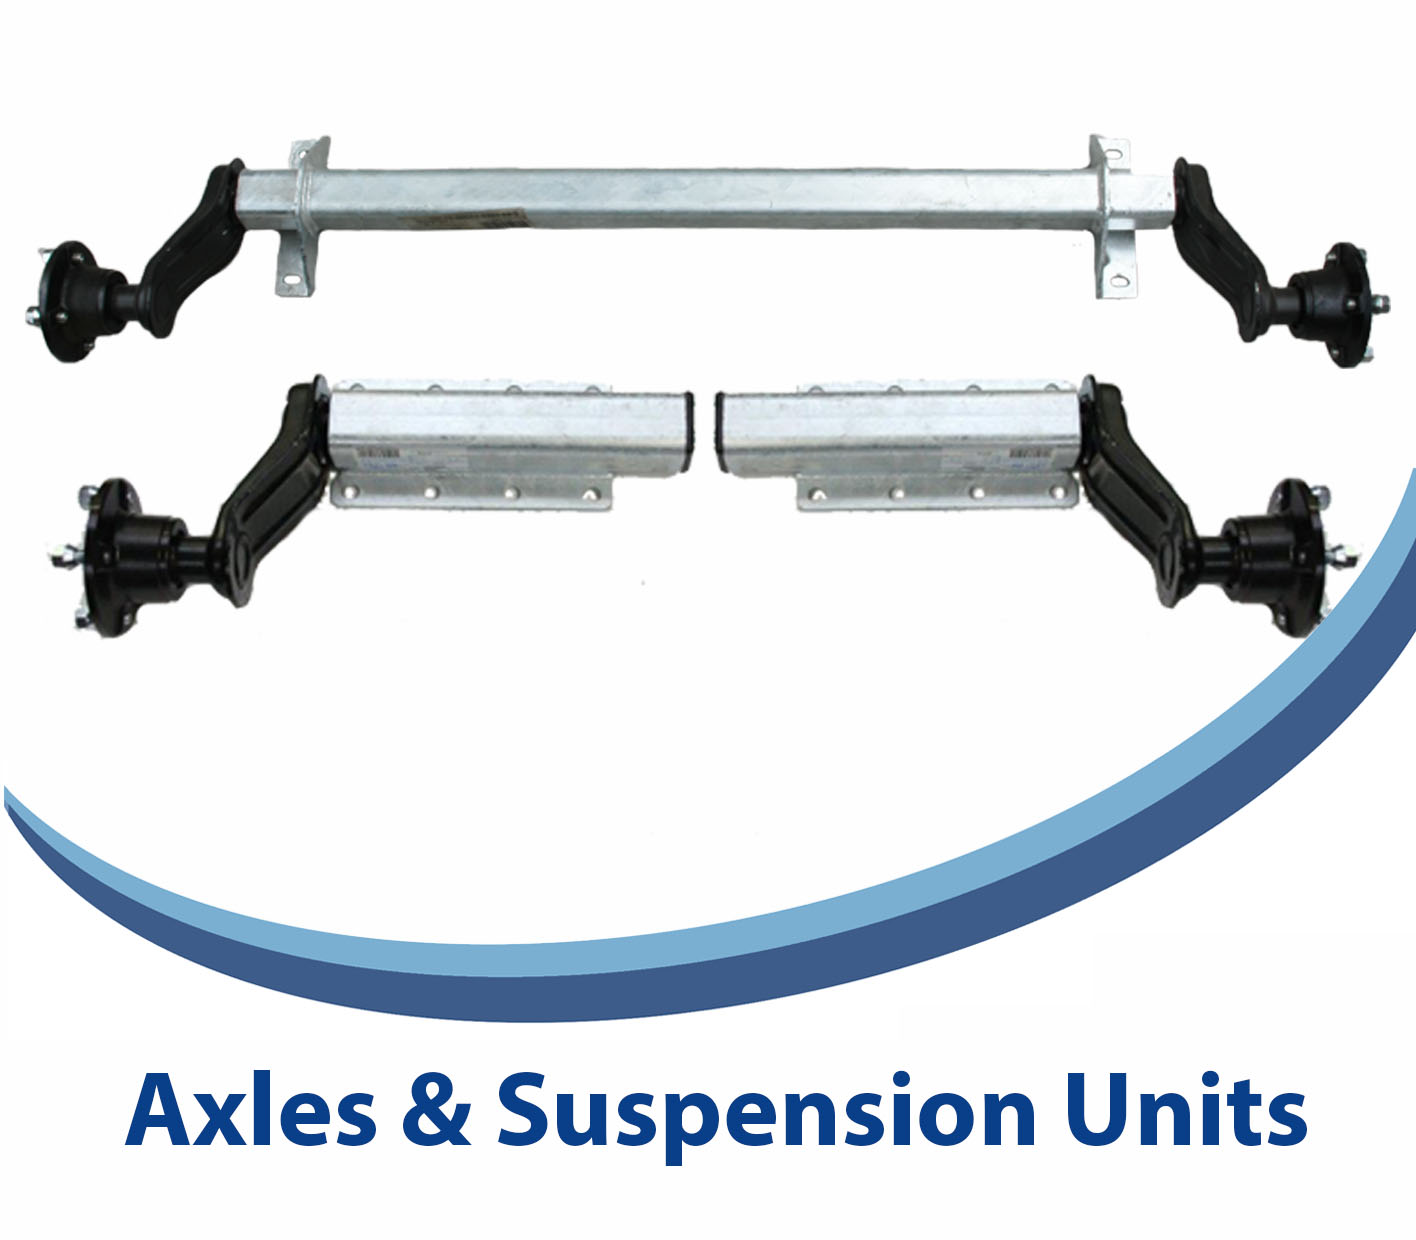 Axles & Suspension Units